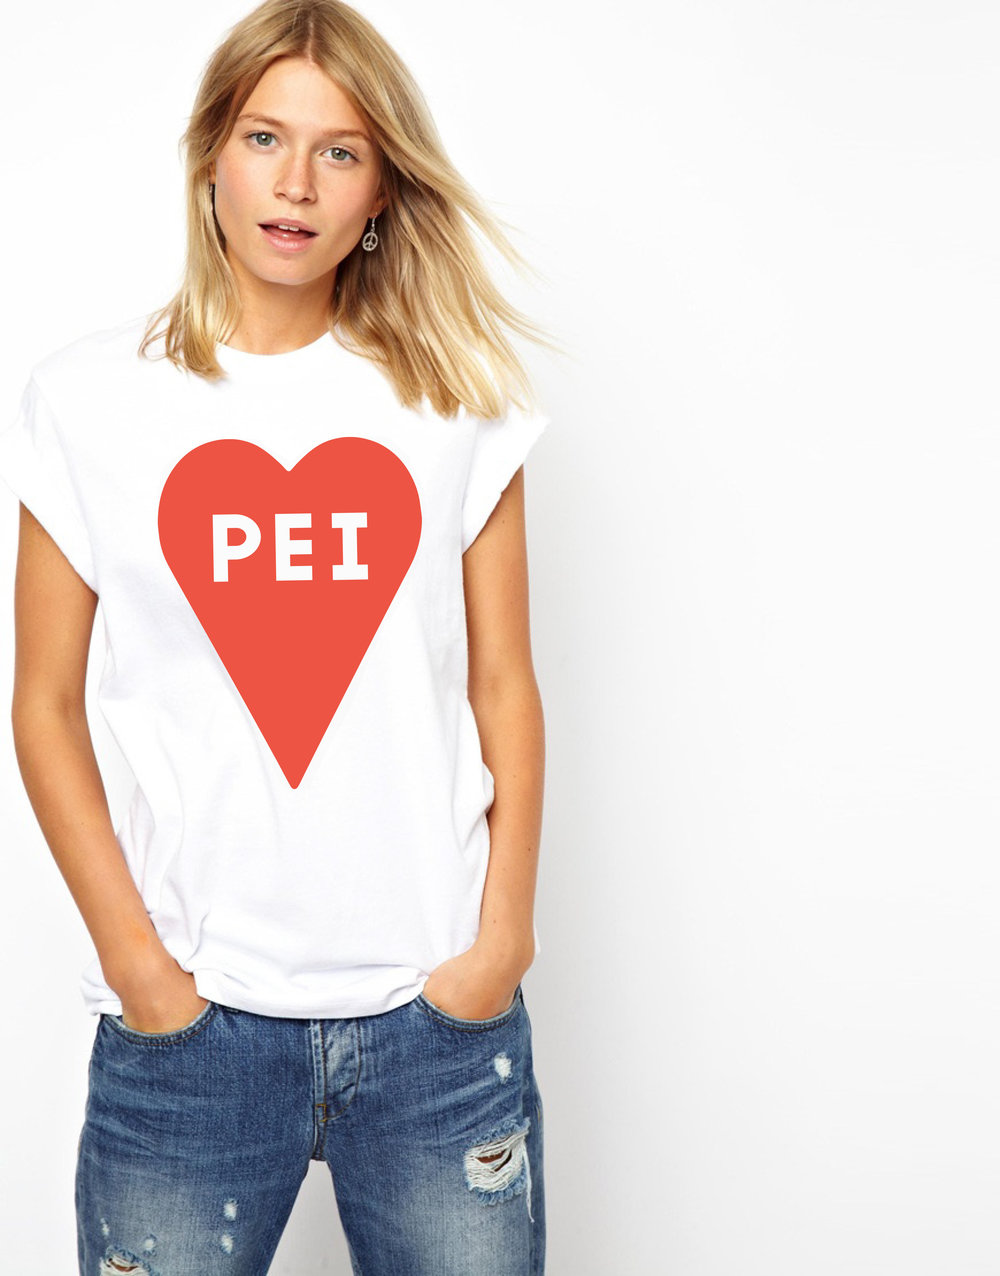 our new PEI Heart Tees are now available to pre-order! -